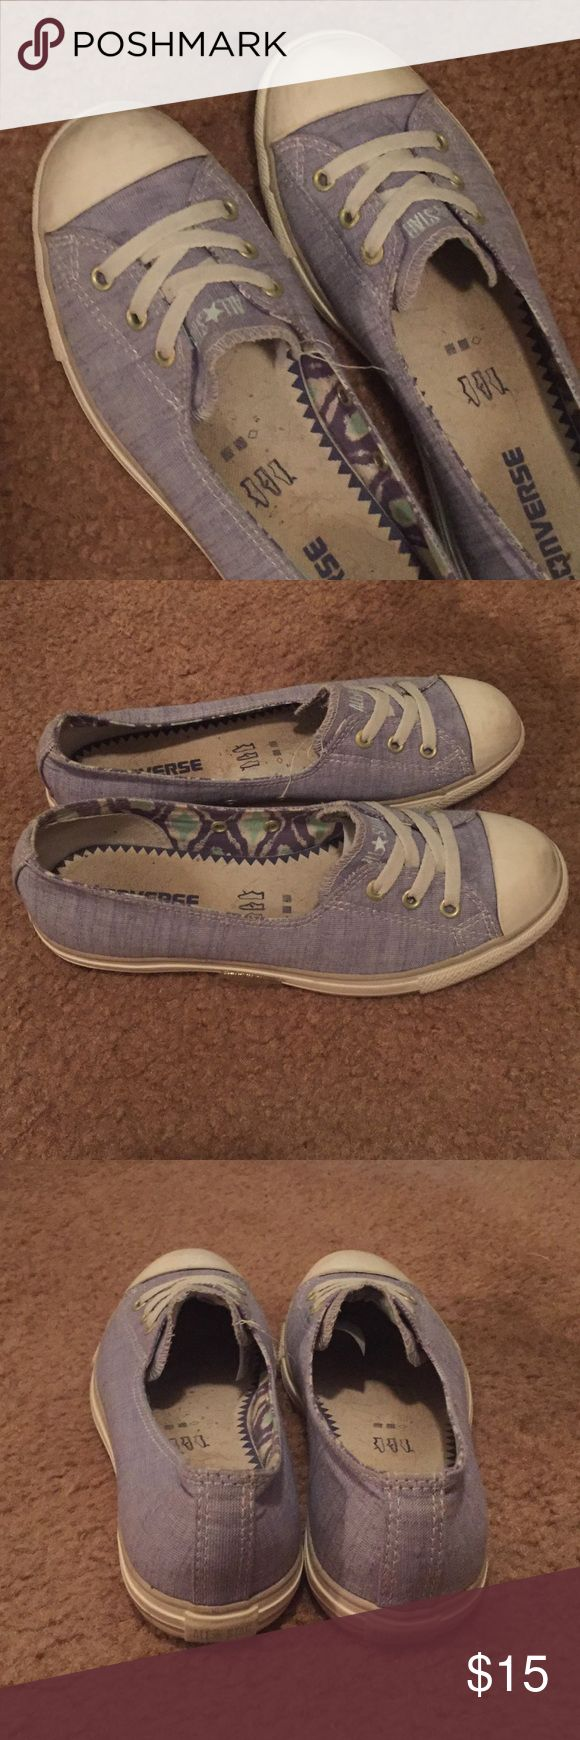 Unique Converse slip ons! You'll stand out with these super cute converse slip ons. A style that not everyone has and can go with almost anything. They're a pale purple color and in great condition. Converse Shoes Sneakers